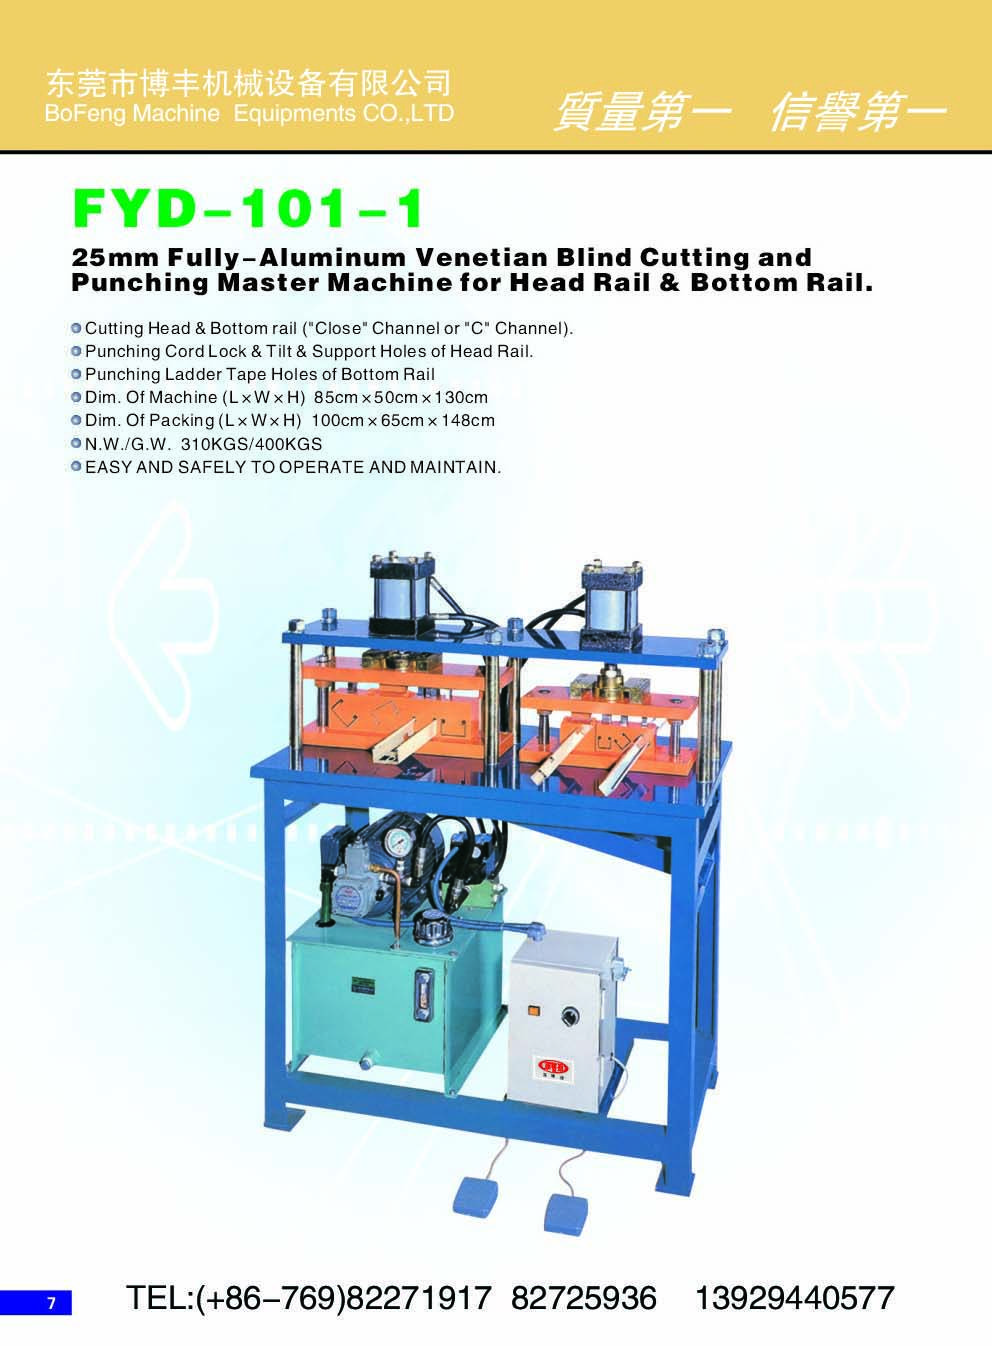 Fully-Automatic  Venetian Blind Cutting and Punching Machine for Head Rail & Bottom Rail(Hydraulic P